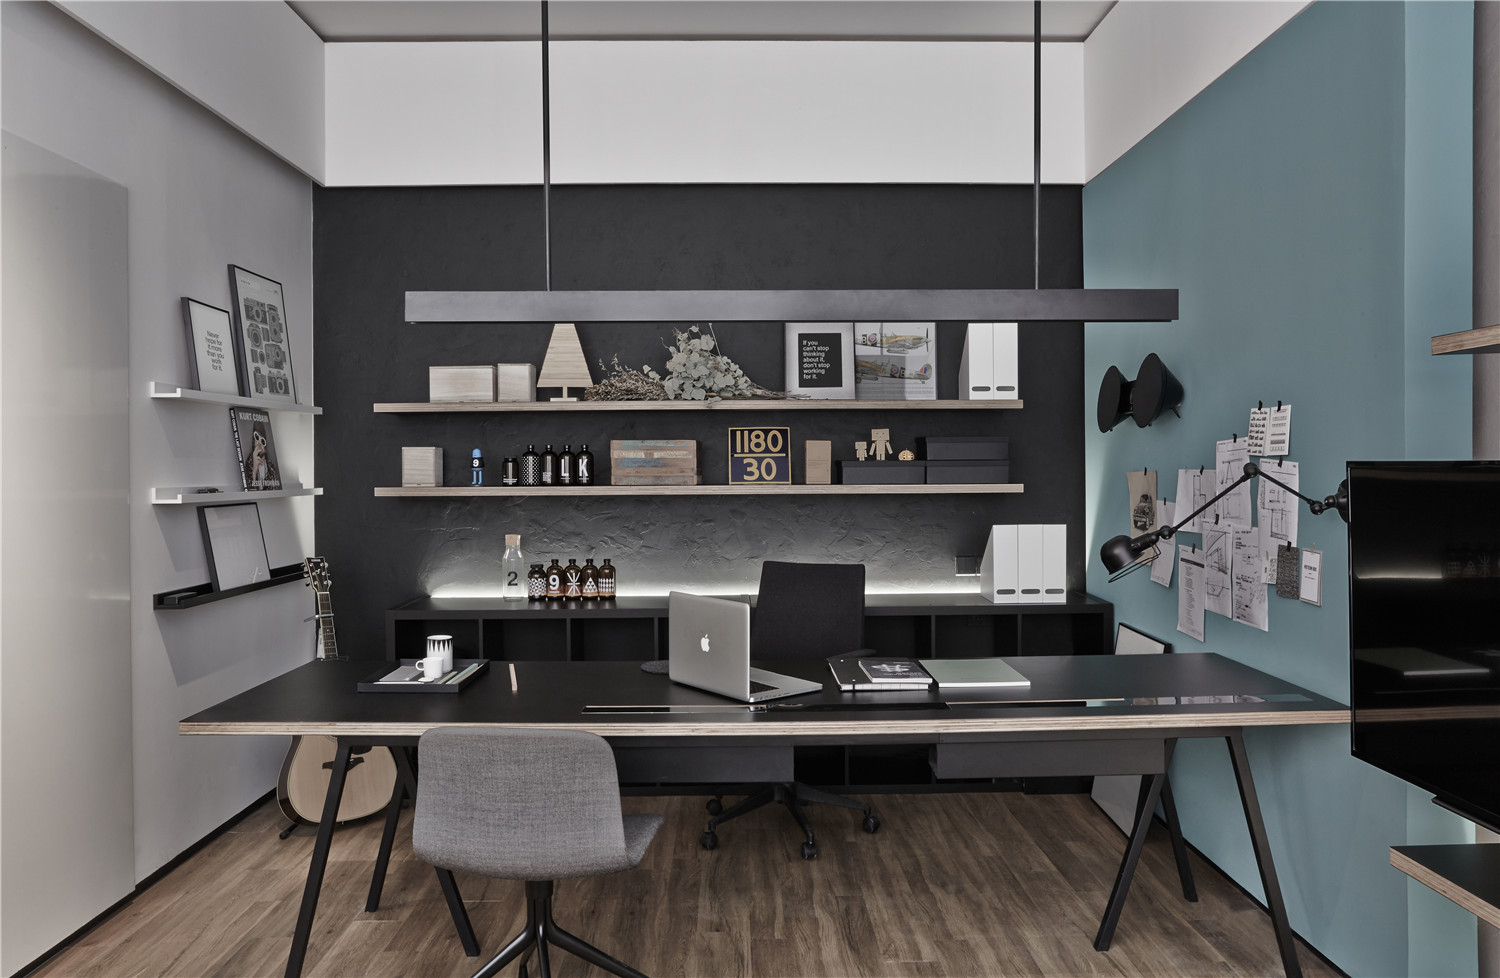 latest office designs. zoom image | view original size latest office designs